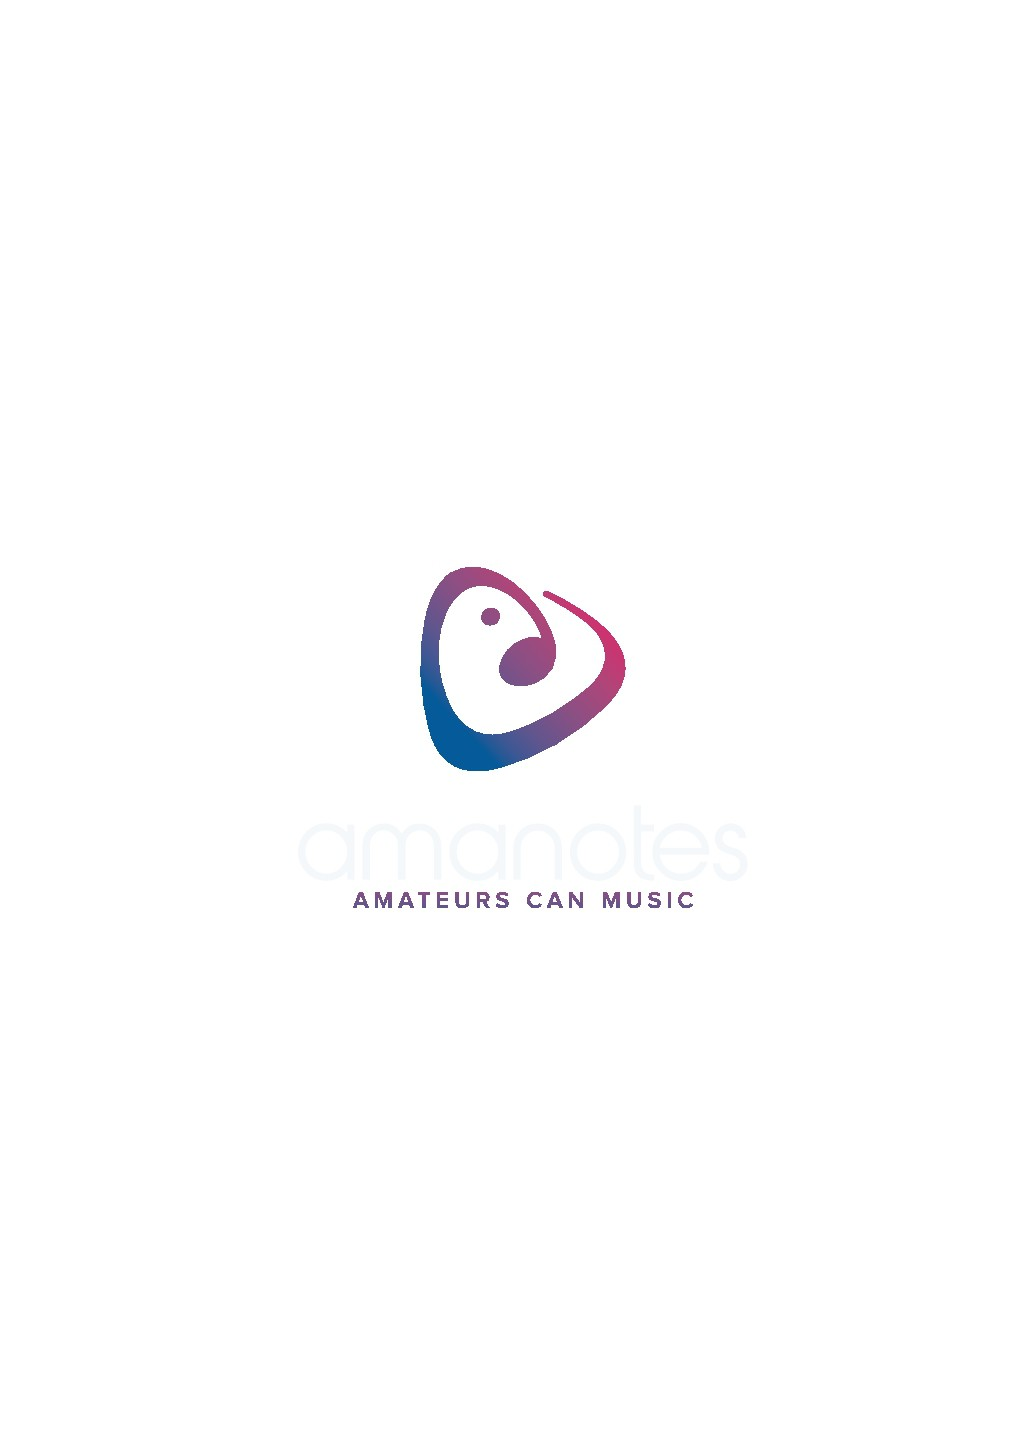 Need a Game Developer's logo for Amanotes - fit both business and phone users' eyes